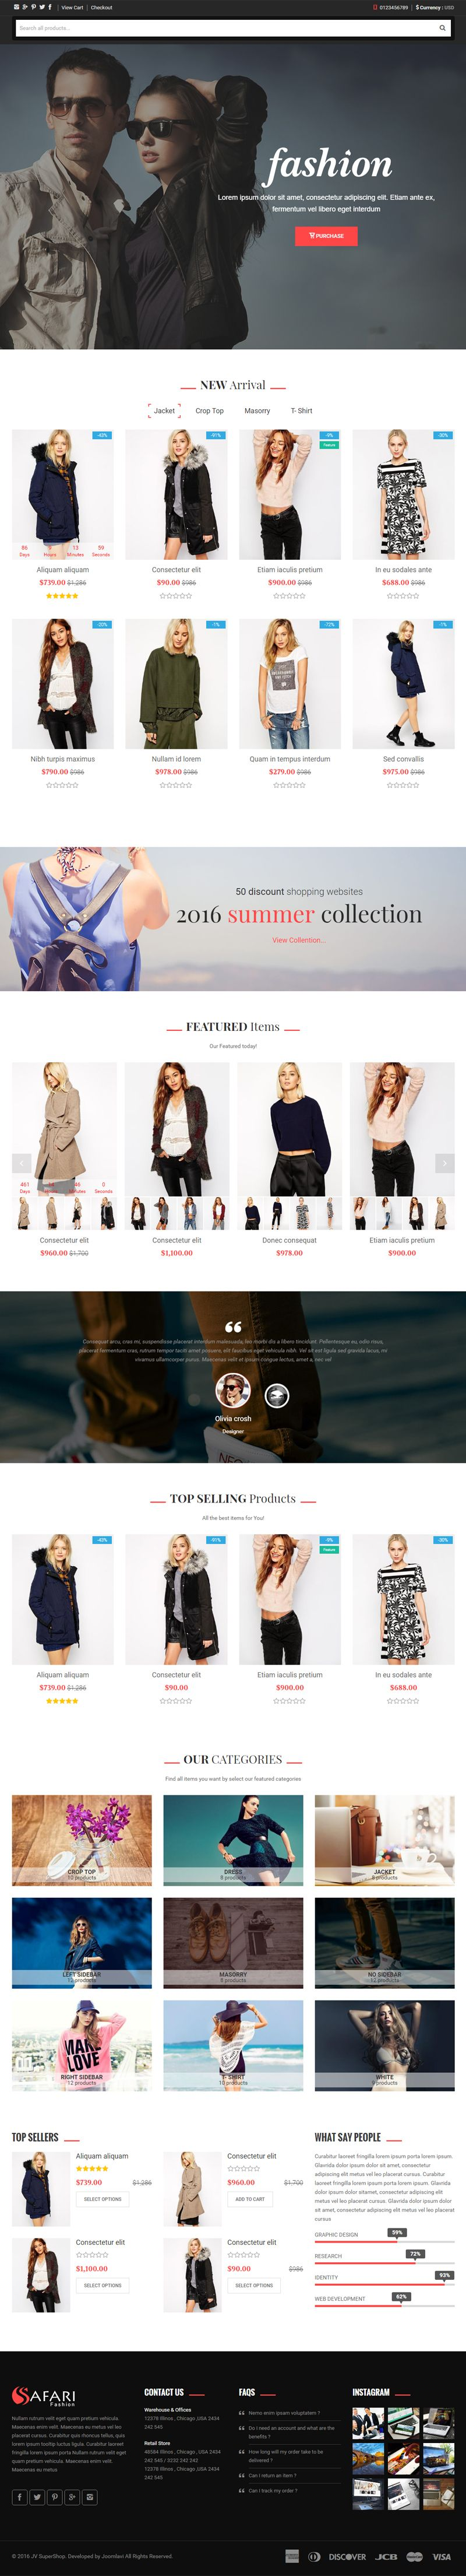 Safari - Responsive Multipurpose Shopify Theme Screenshot 2